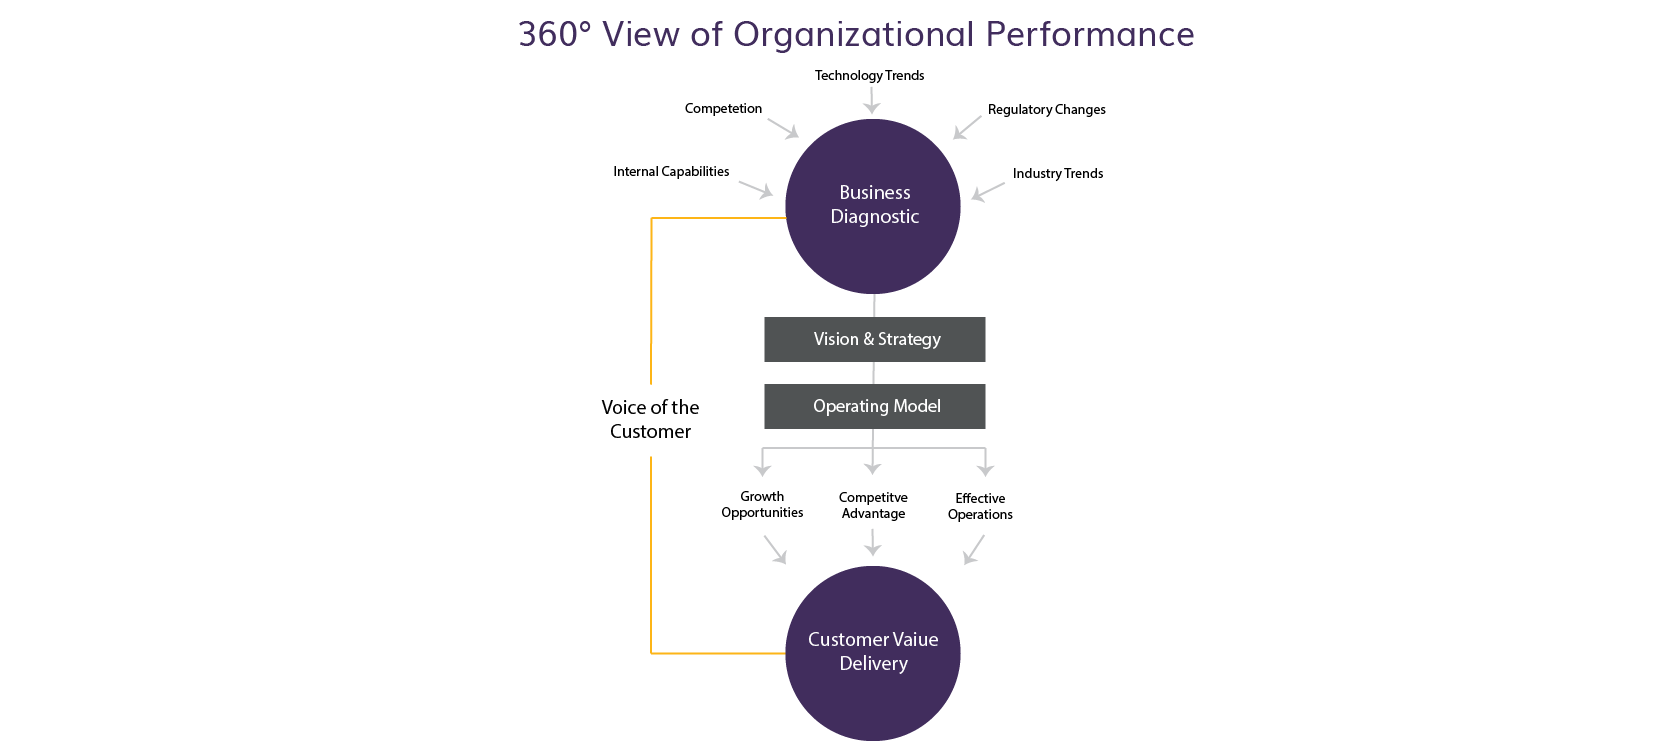 360 Degree View of Organizational Performance